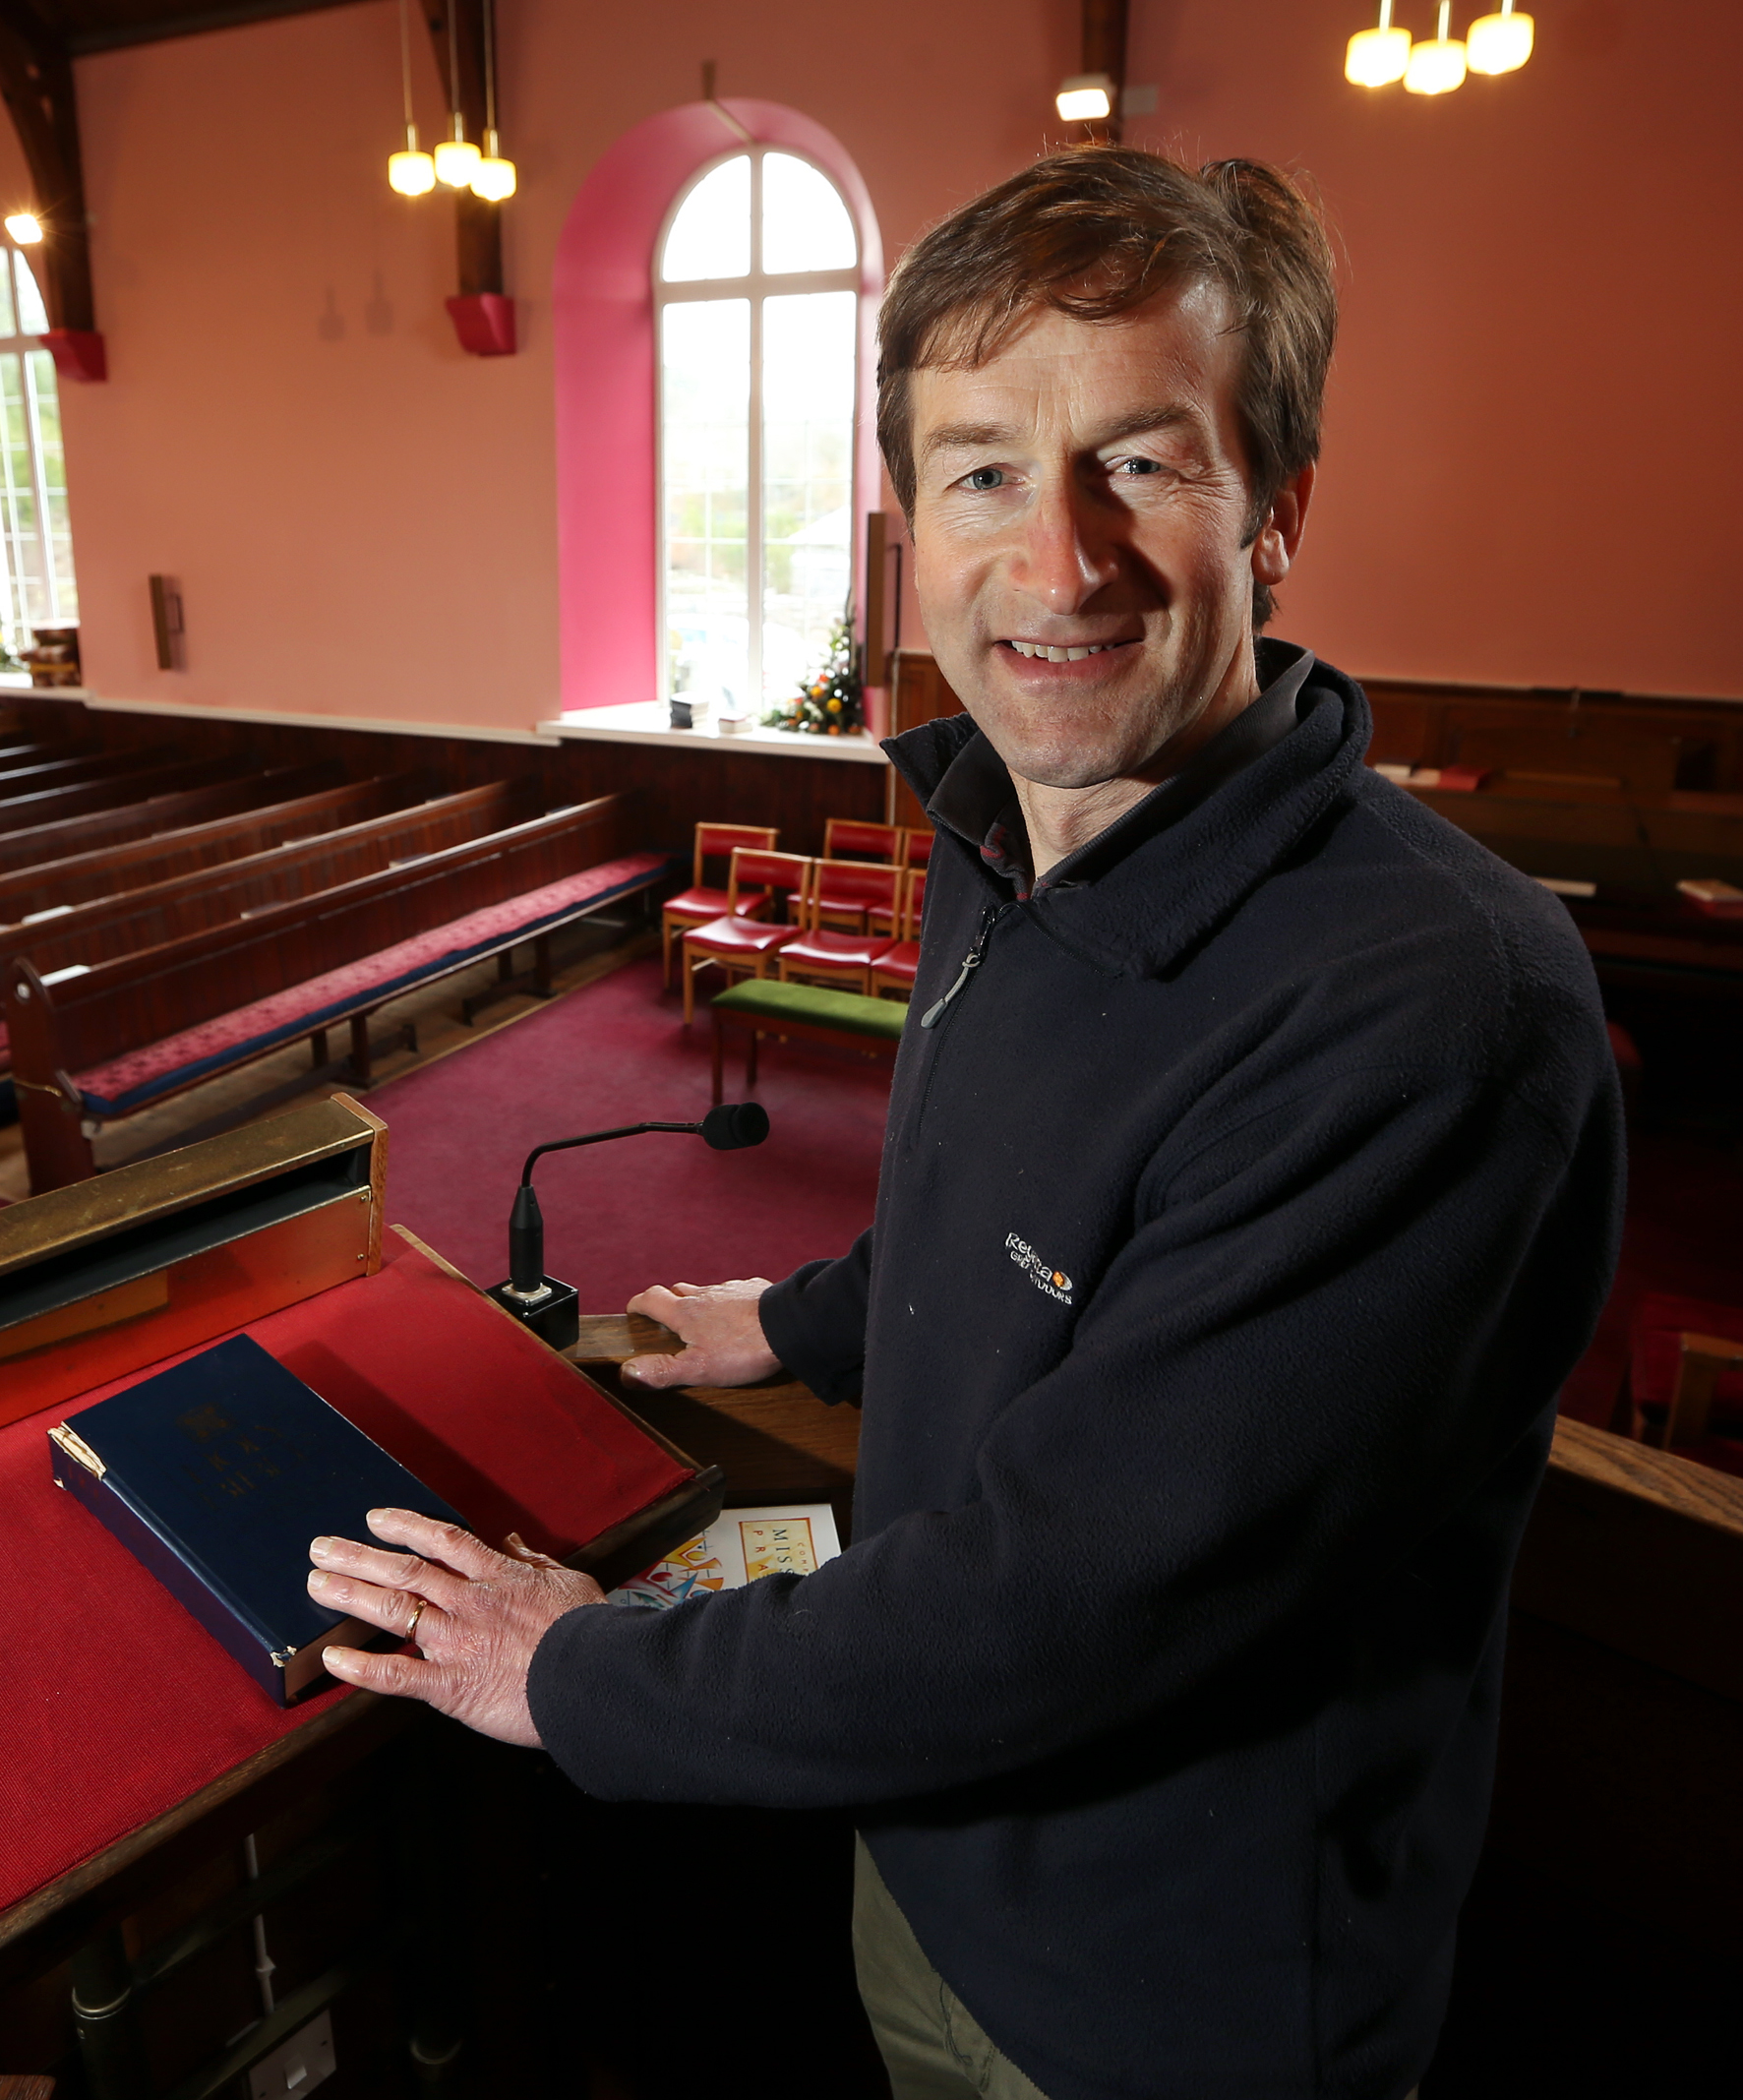 PROFILE - REV RORY MACLEOD - 5